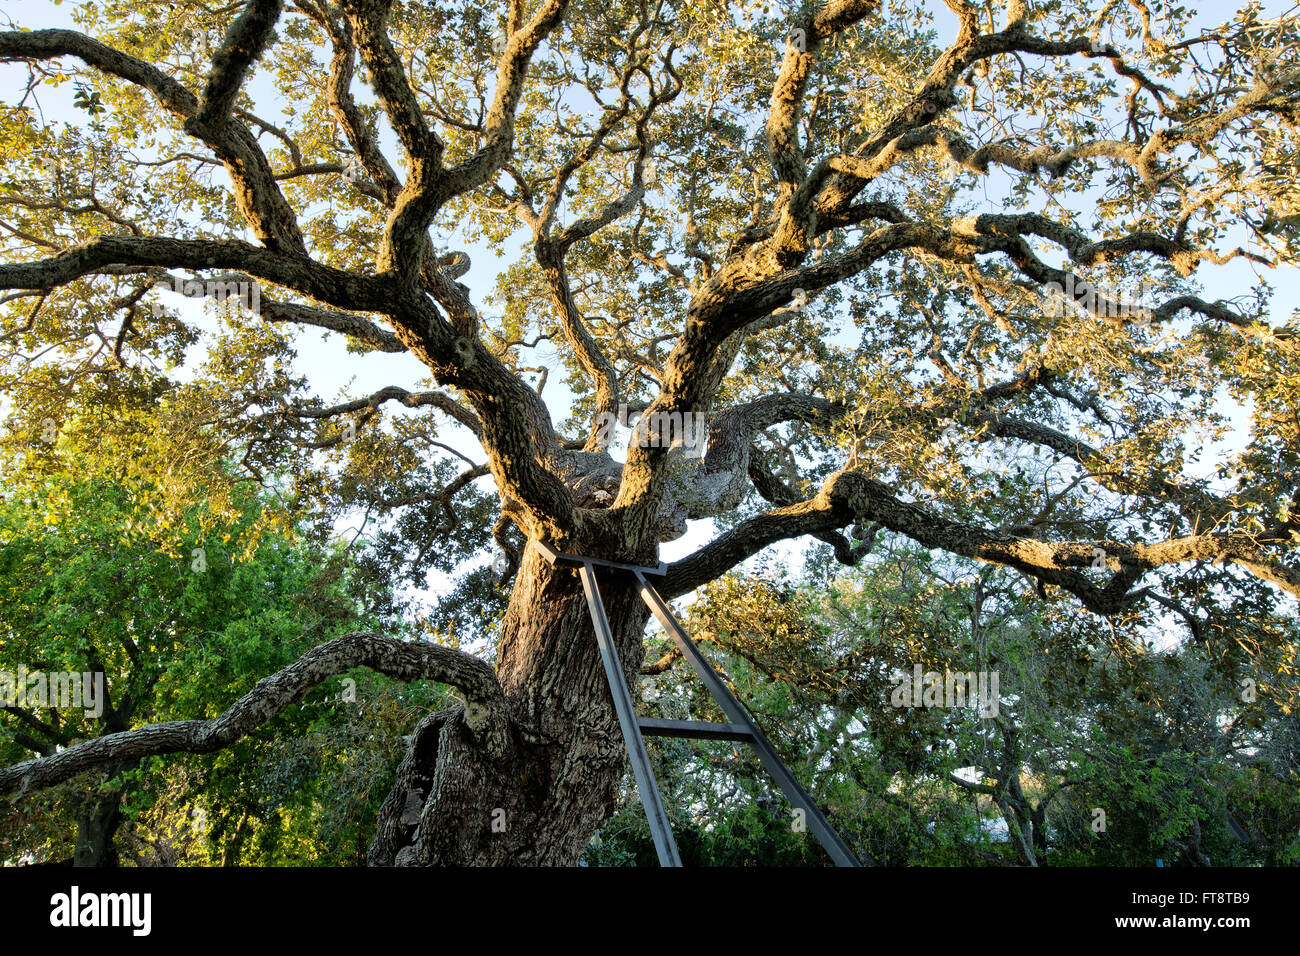 Ancient Southern Live Oak, being supported by iron frame, first morning light. - Stock Image